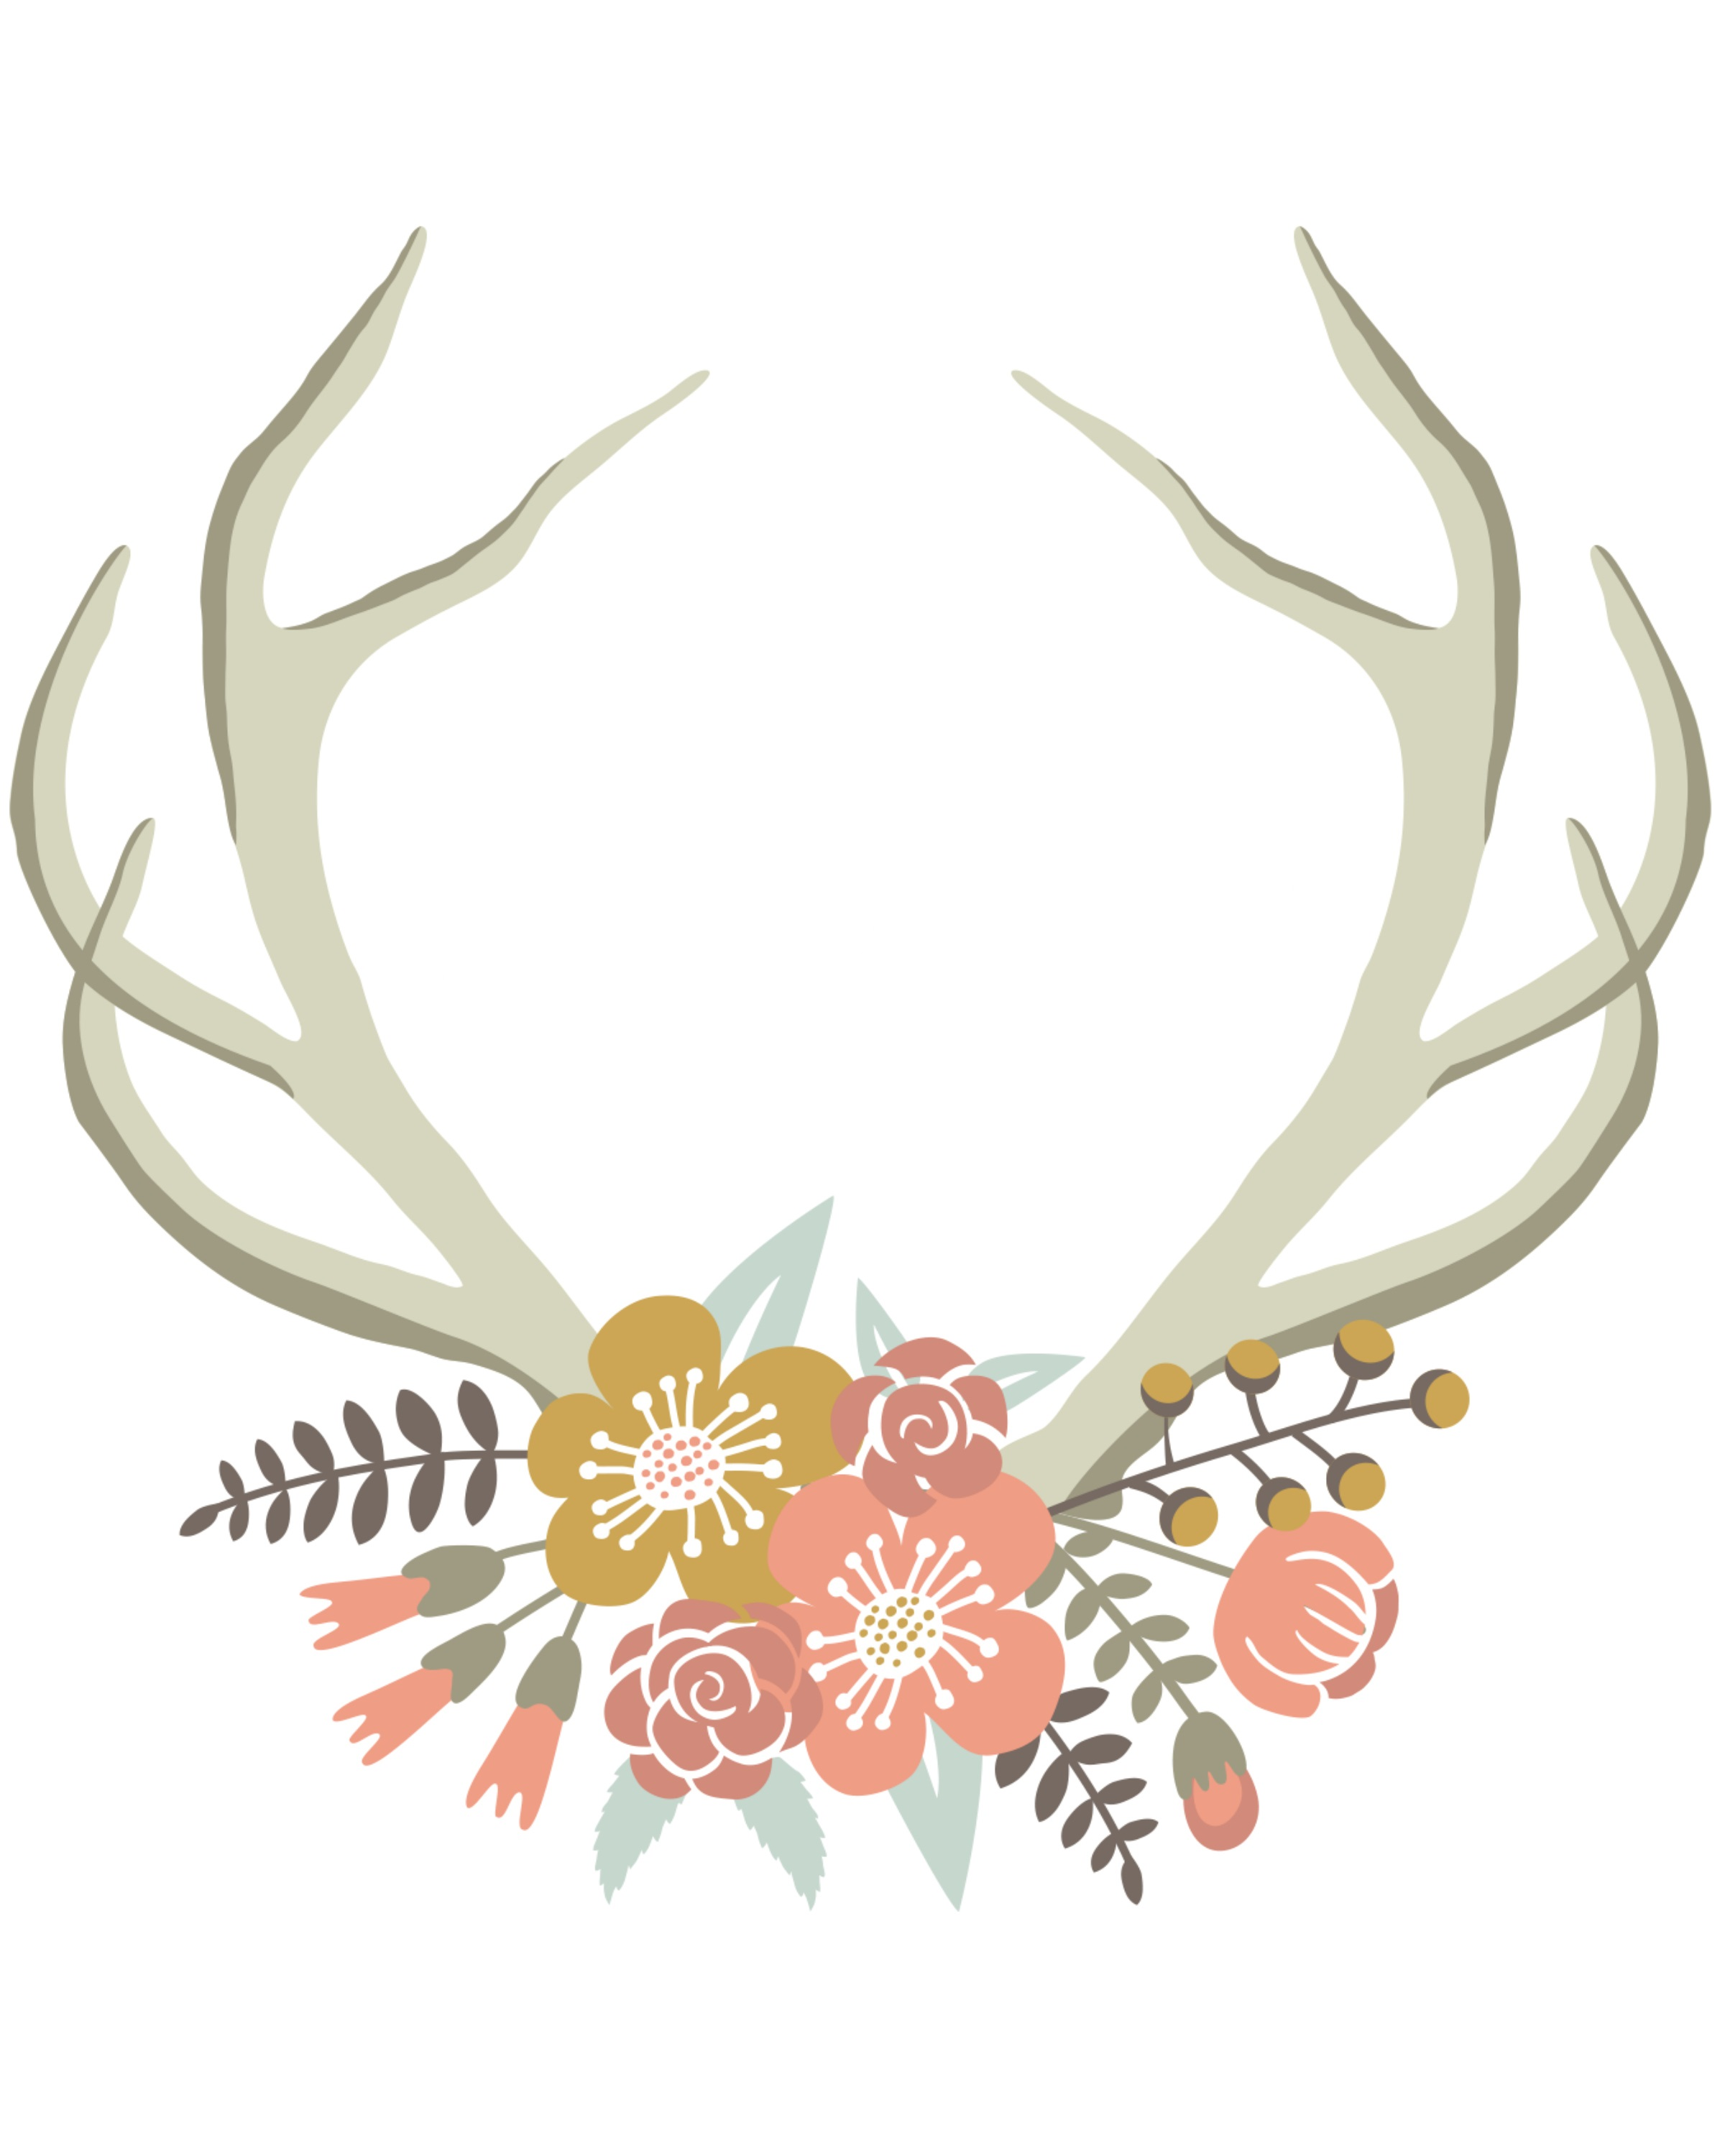 Antler clipart free clip black and white stock Free Flower Antler Cliparts, Download Free Clip Art, Free Clip Art ... clip black and white stock